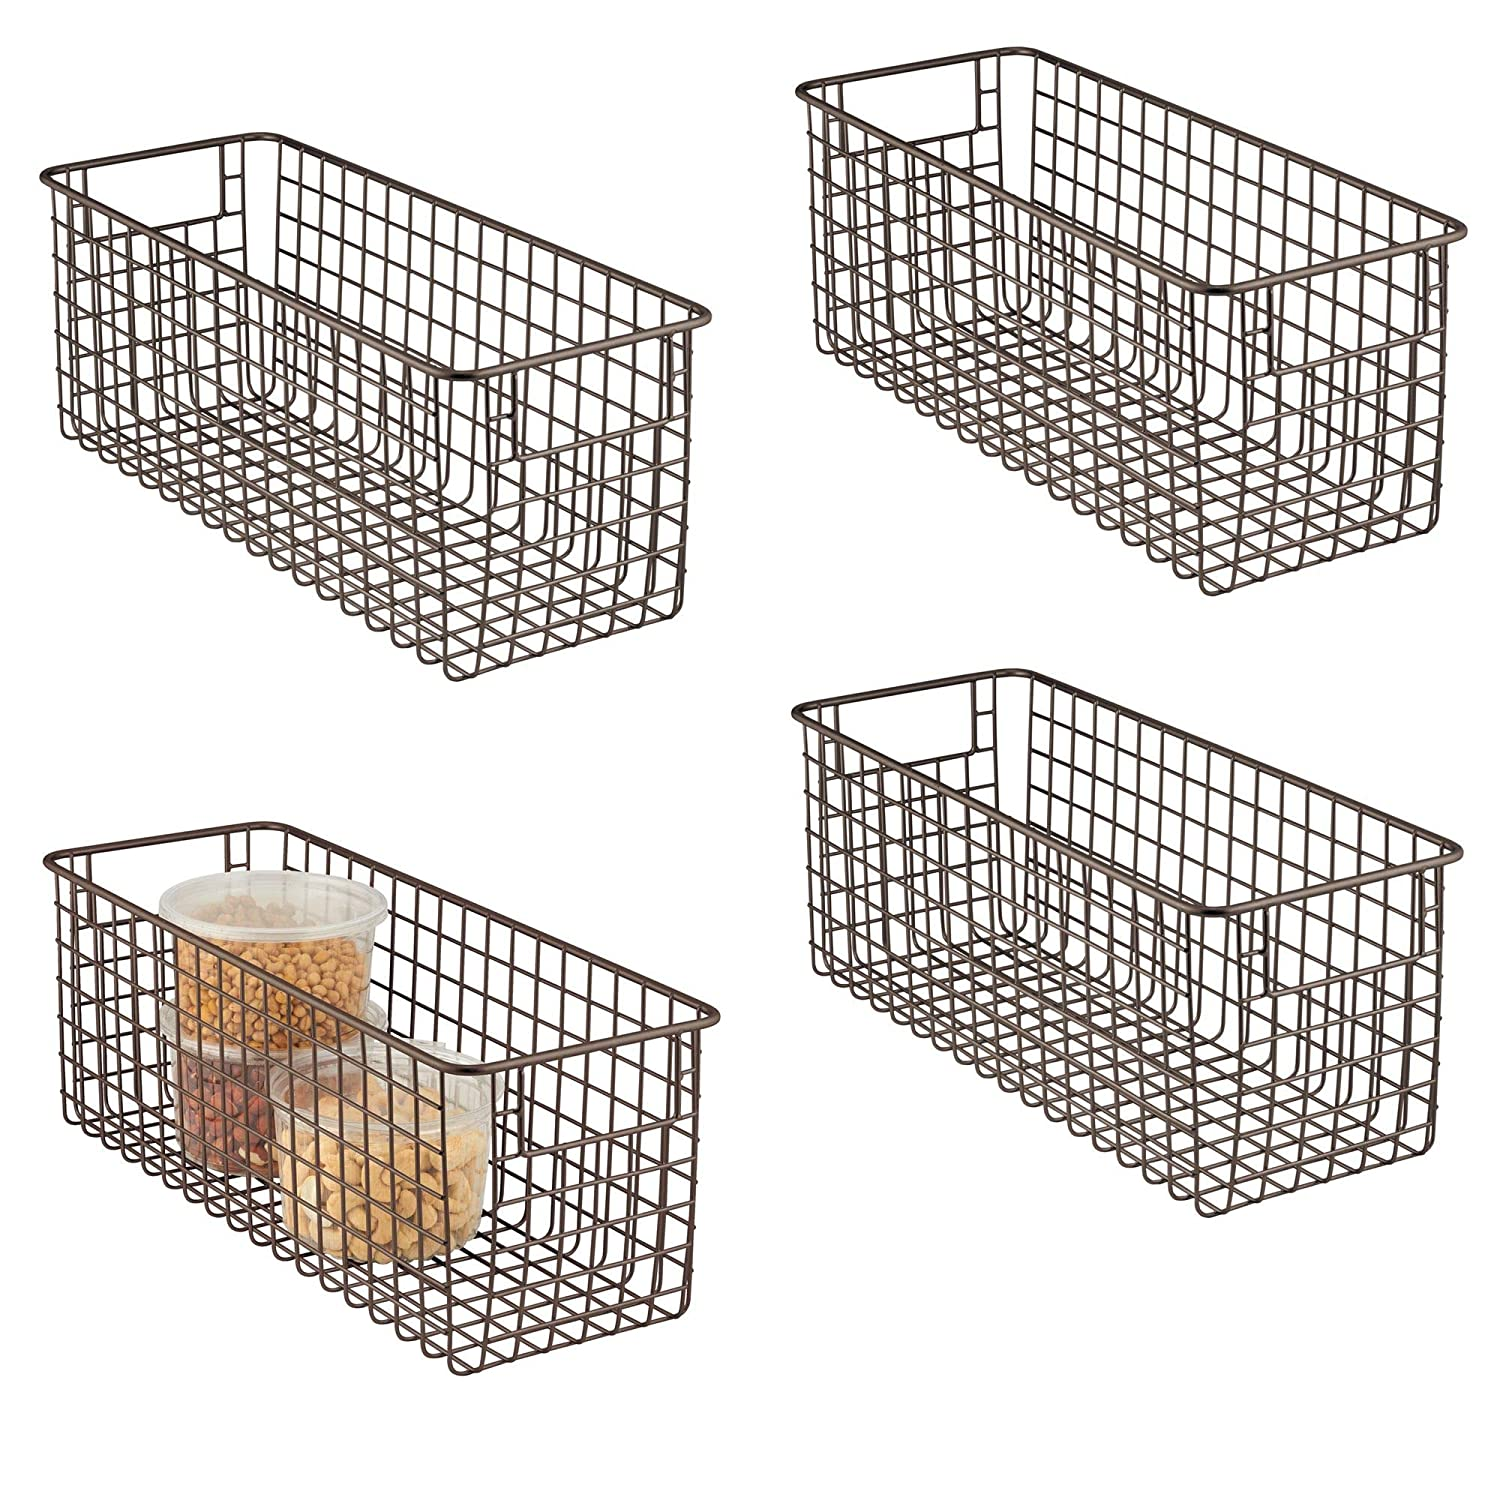 "mDesign Farmhouse Decor Metal Wire Food Storage Organizer Bin Basket Handles Kitchen Cabinets, Pantry, Bathroom, Laundry Room, Closets, Garage - 16"" x 6"" x 6"" - 4 Pack - Bronze"